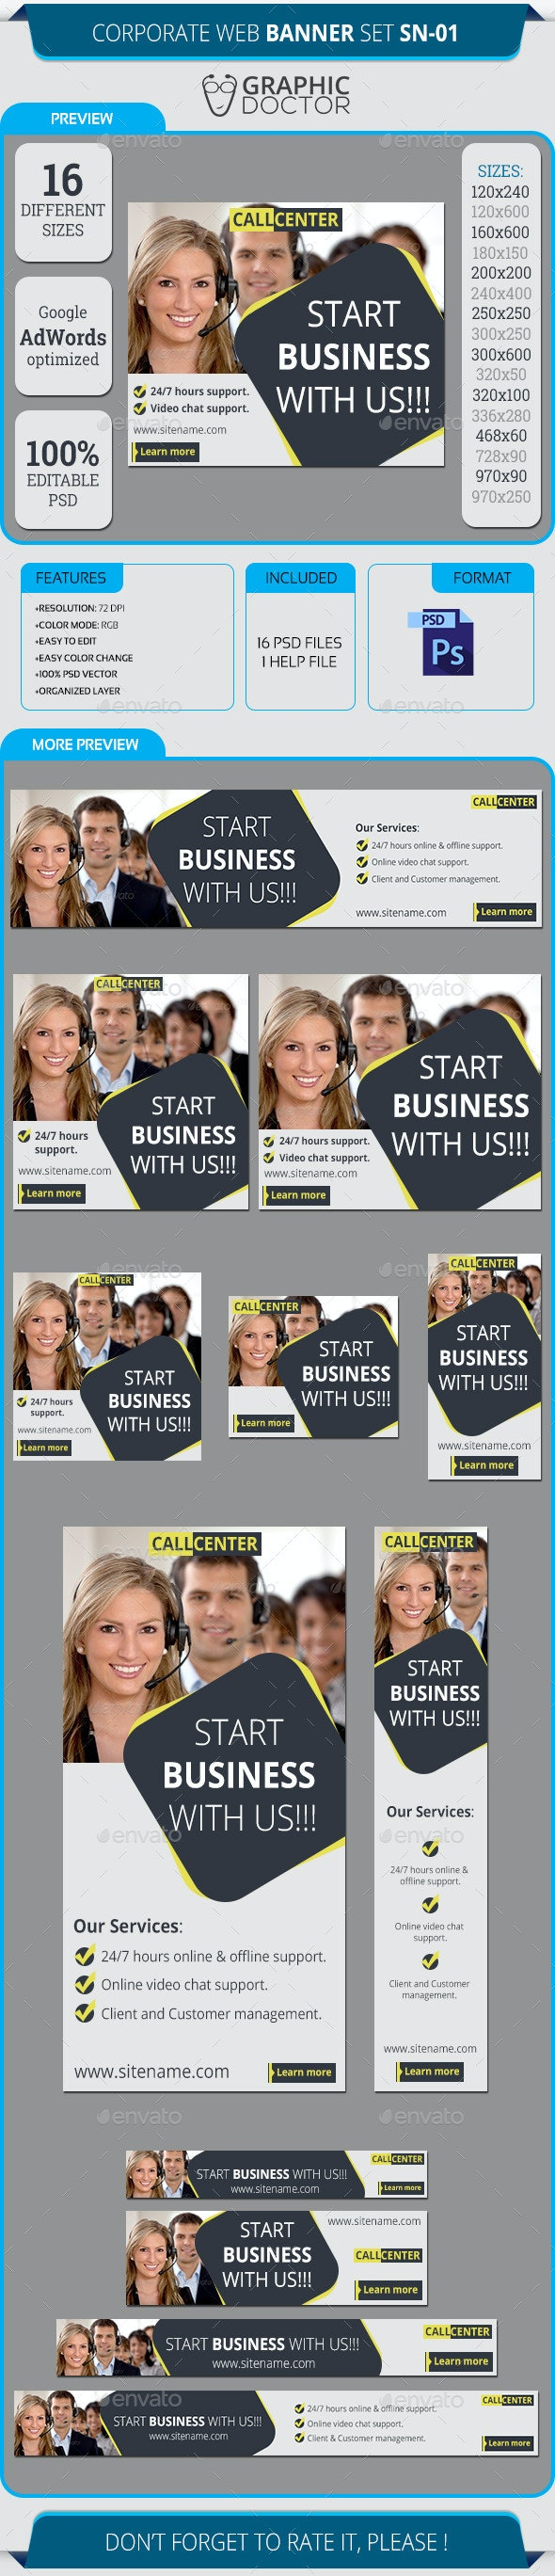 Corporate Web Banner Set SN-01 - Banners & Ads Web Elements